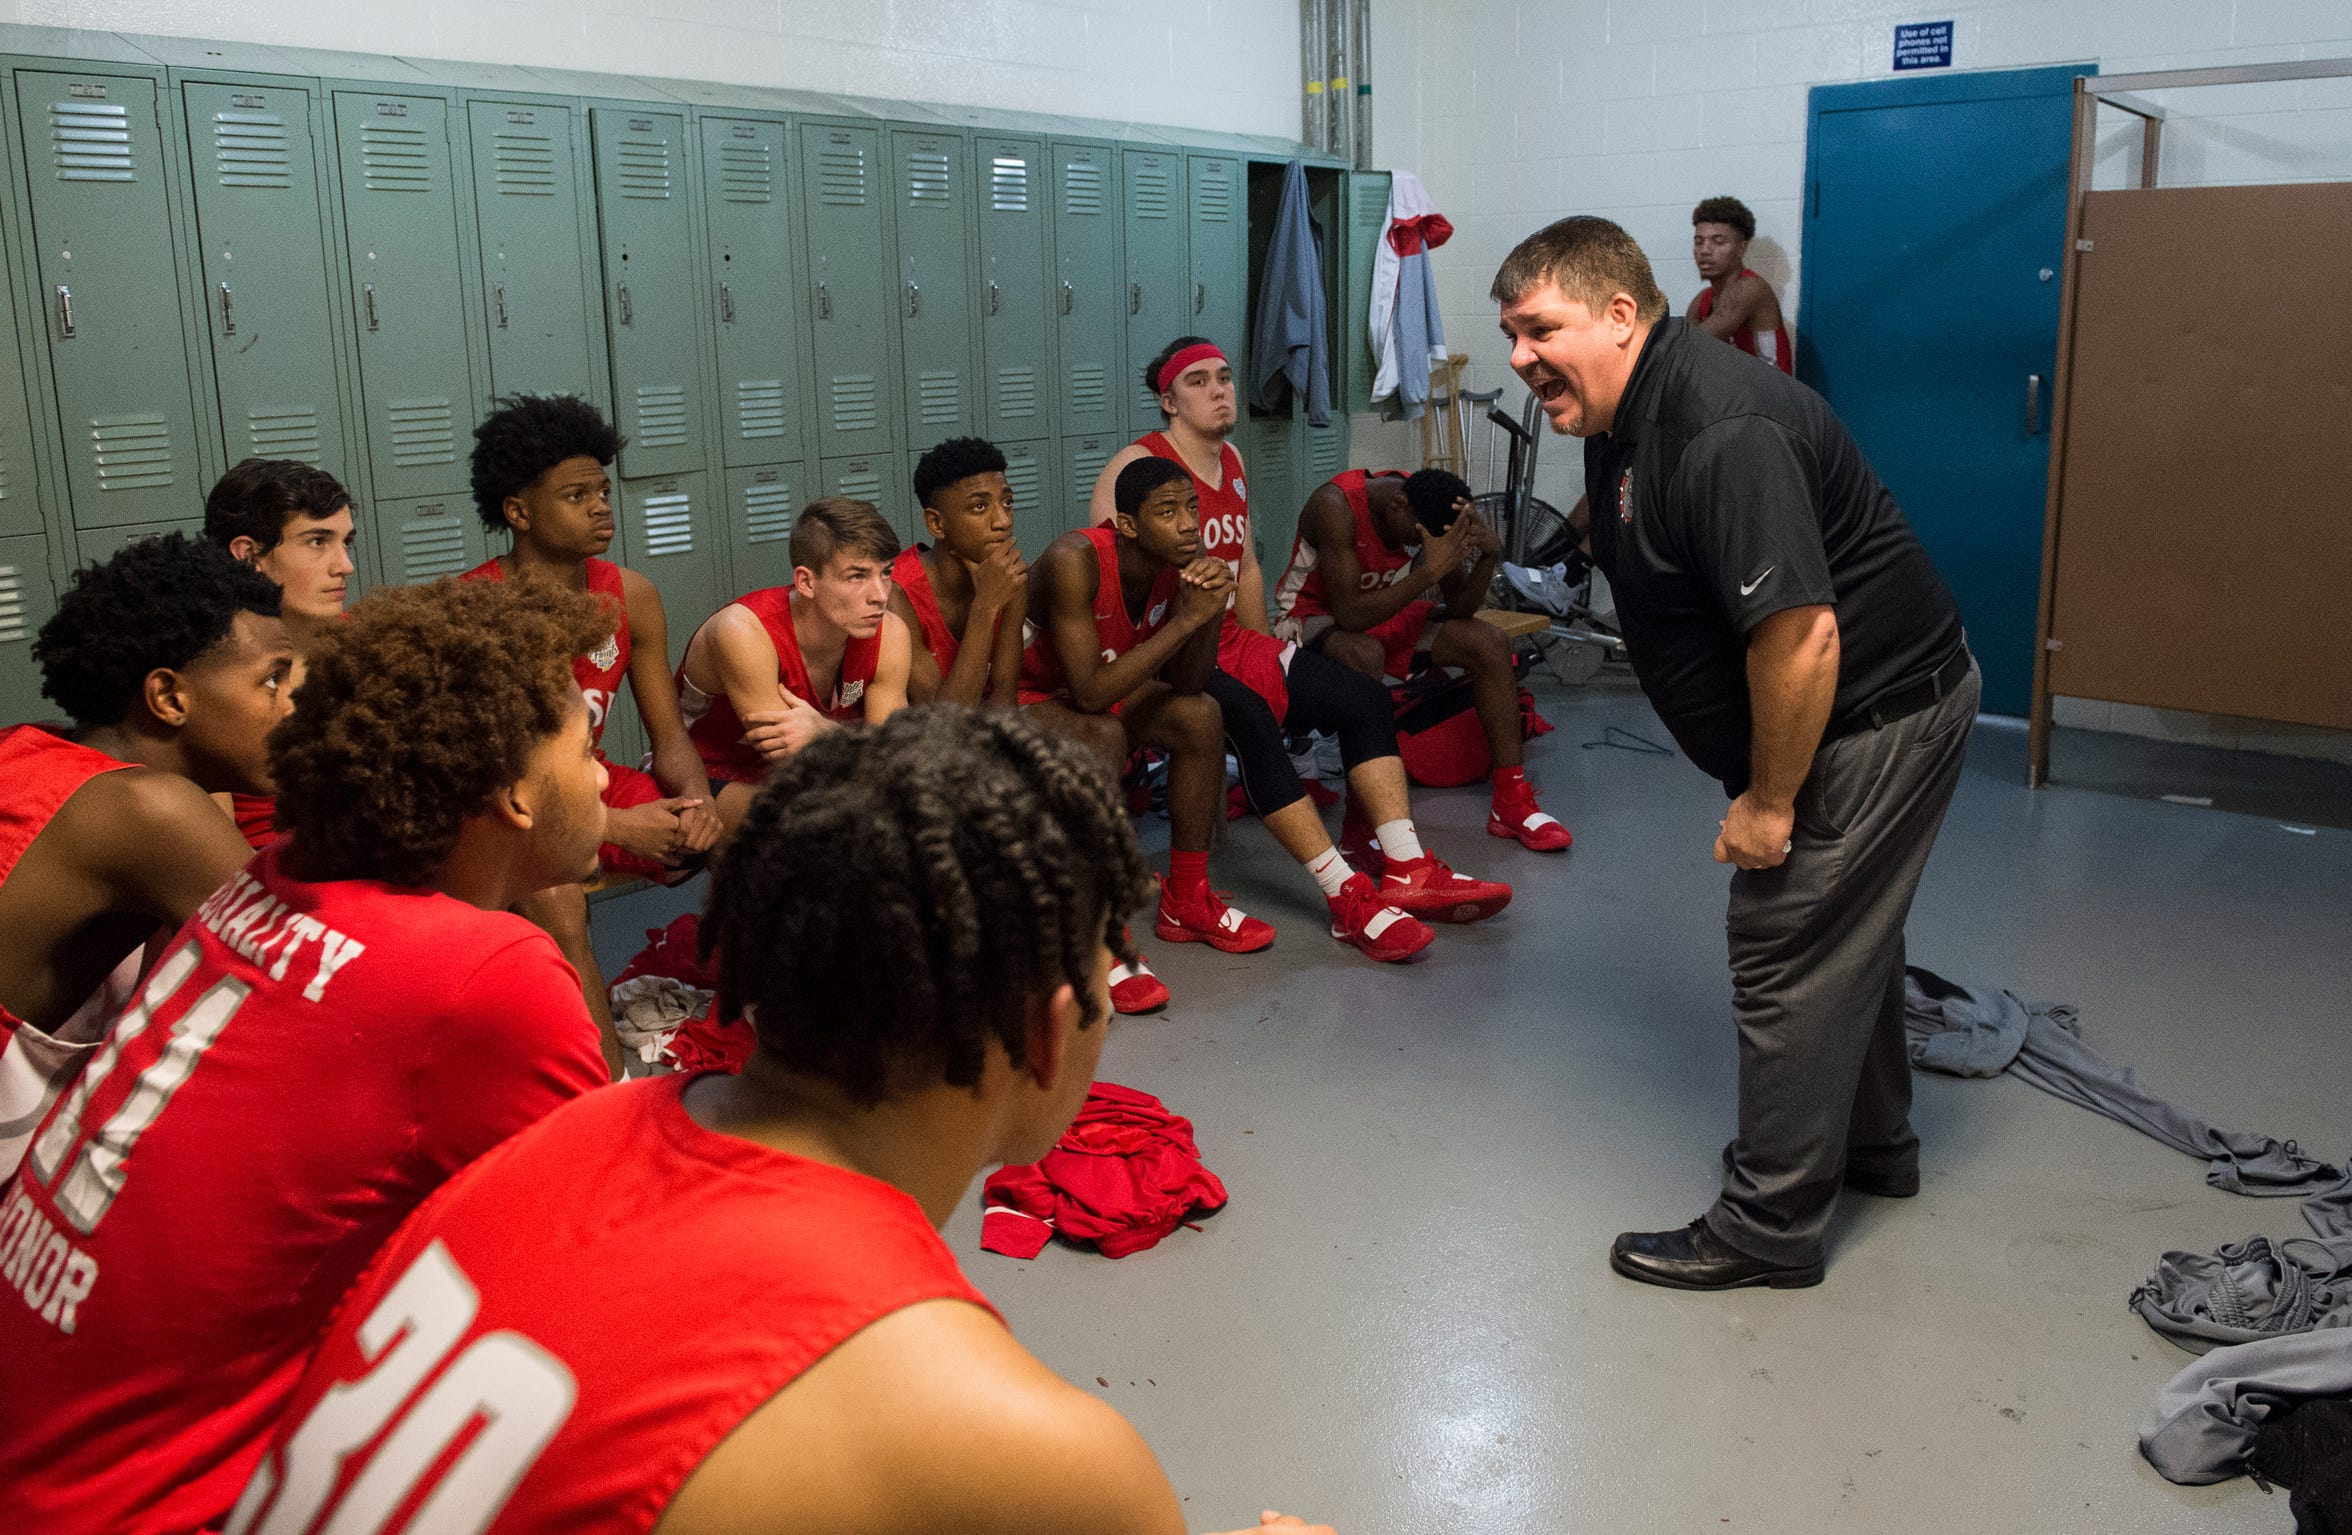 Bosse Head Coach Shane Burkhart energizes the varsity team in the locker room during halftime of the Bosse vs Memorial game Tuesday, Dec. 11, 2018.